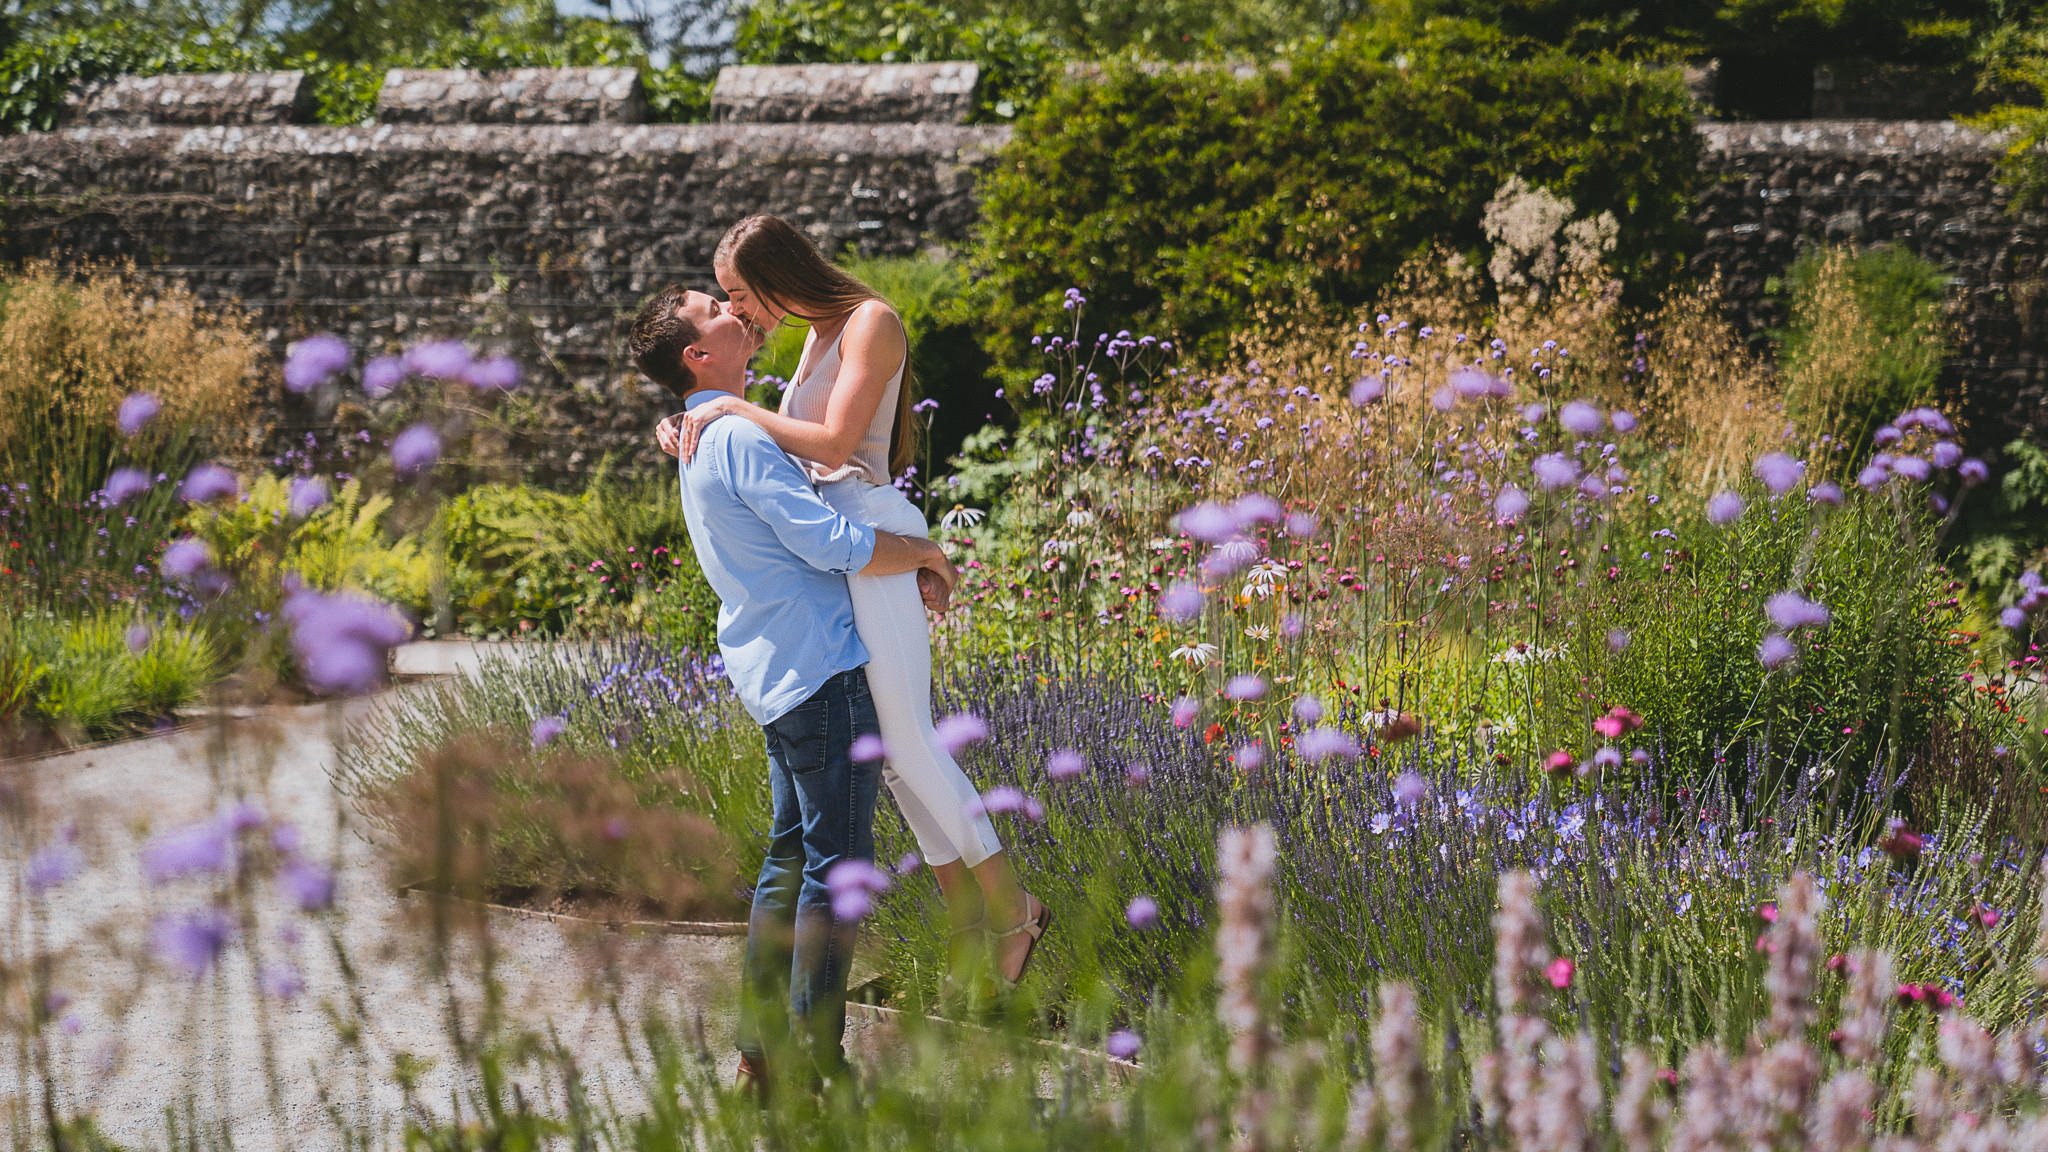 St Fagans pre-wedding photography session in Cardiff